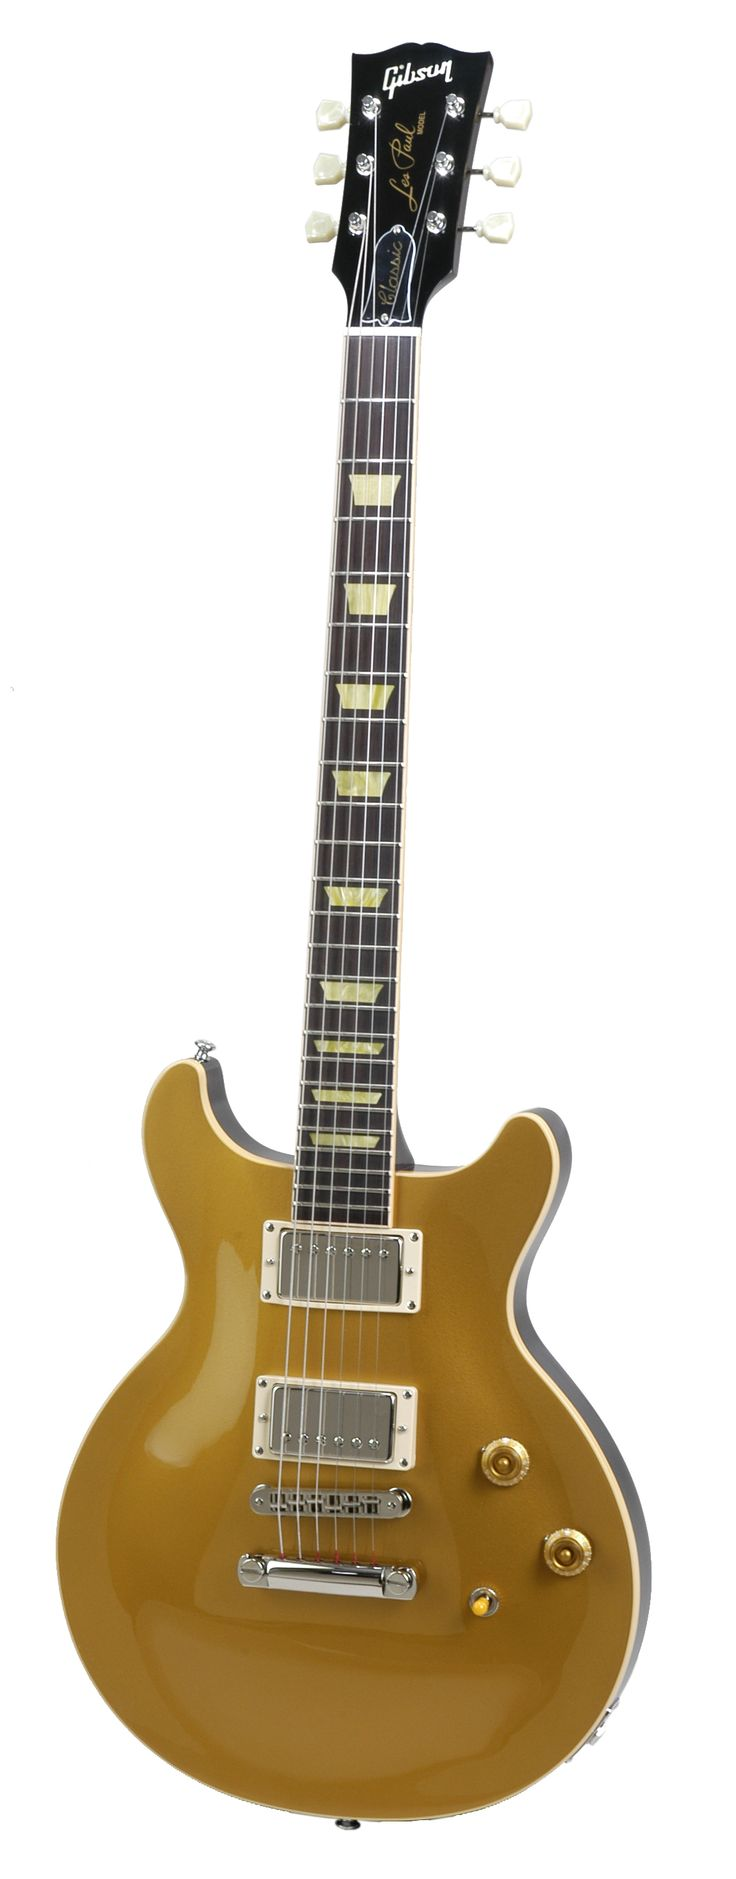 Gibson Les Paul double cut gold bullion gold top